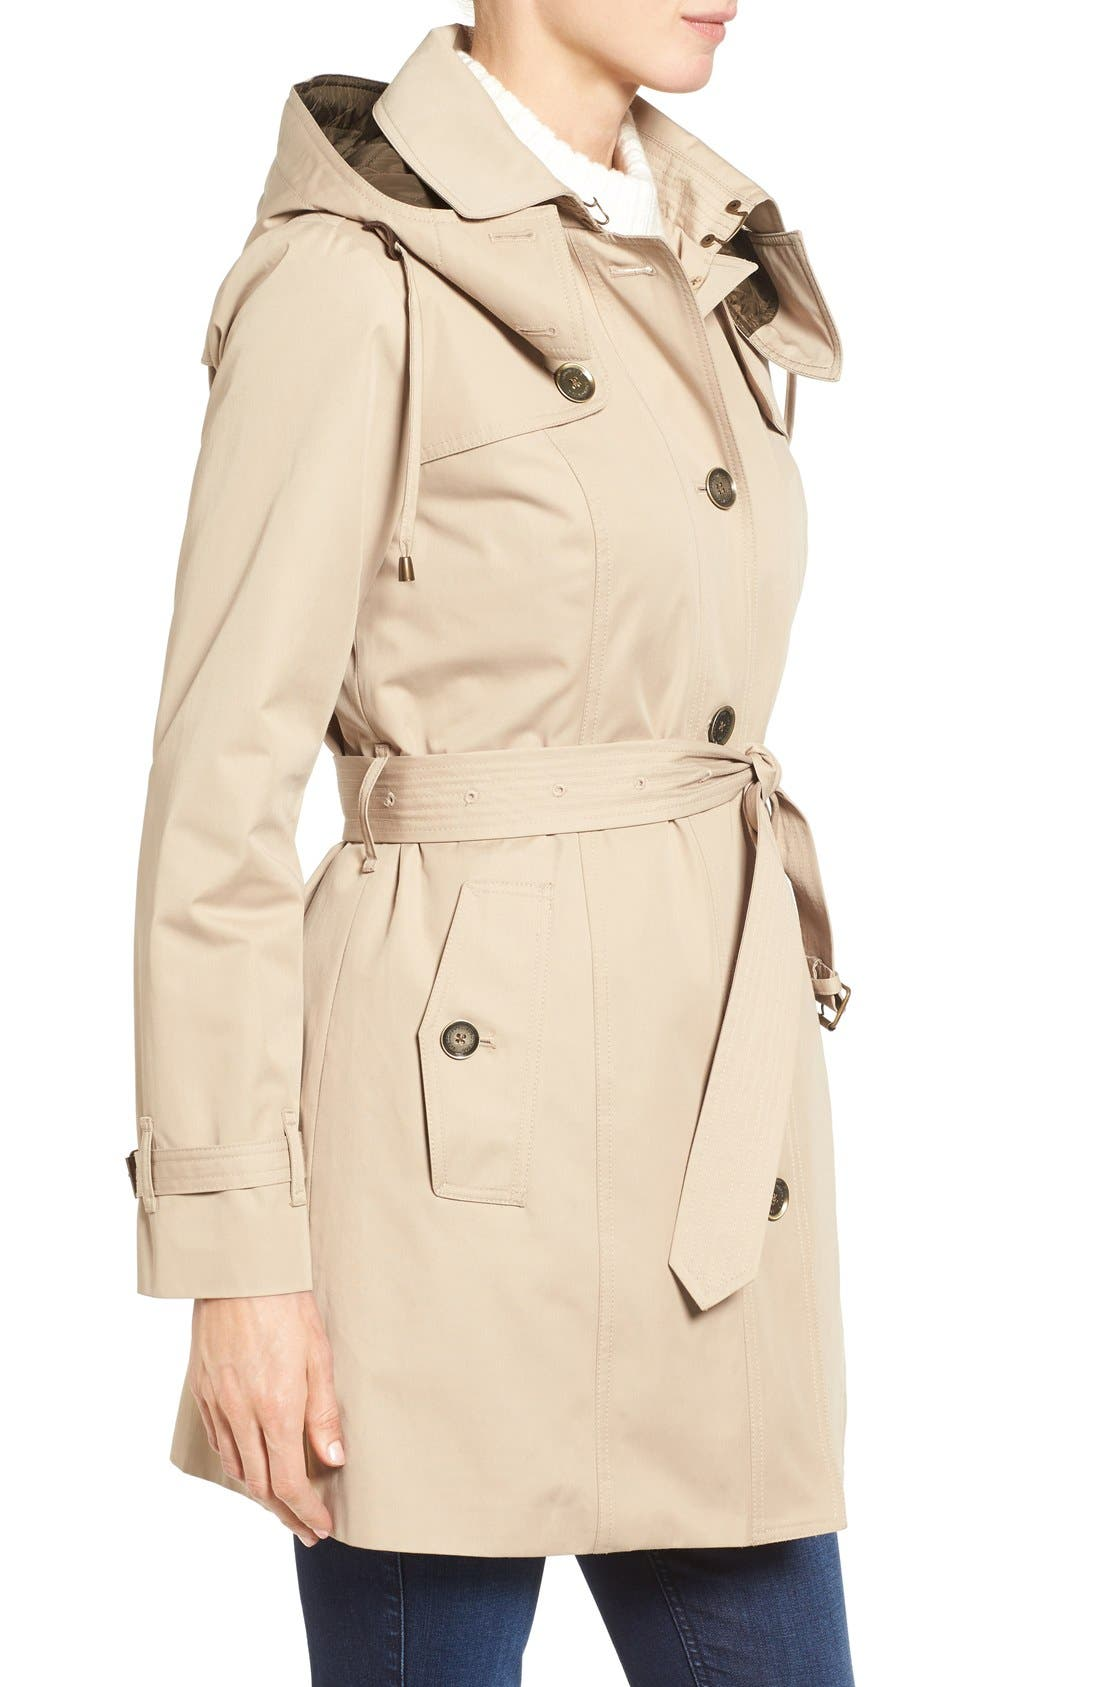 Alternate Image 3  - London Fog Single Breasted Trench Coat (Regular & Petite)